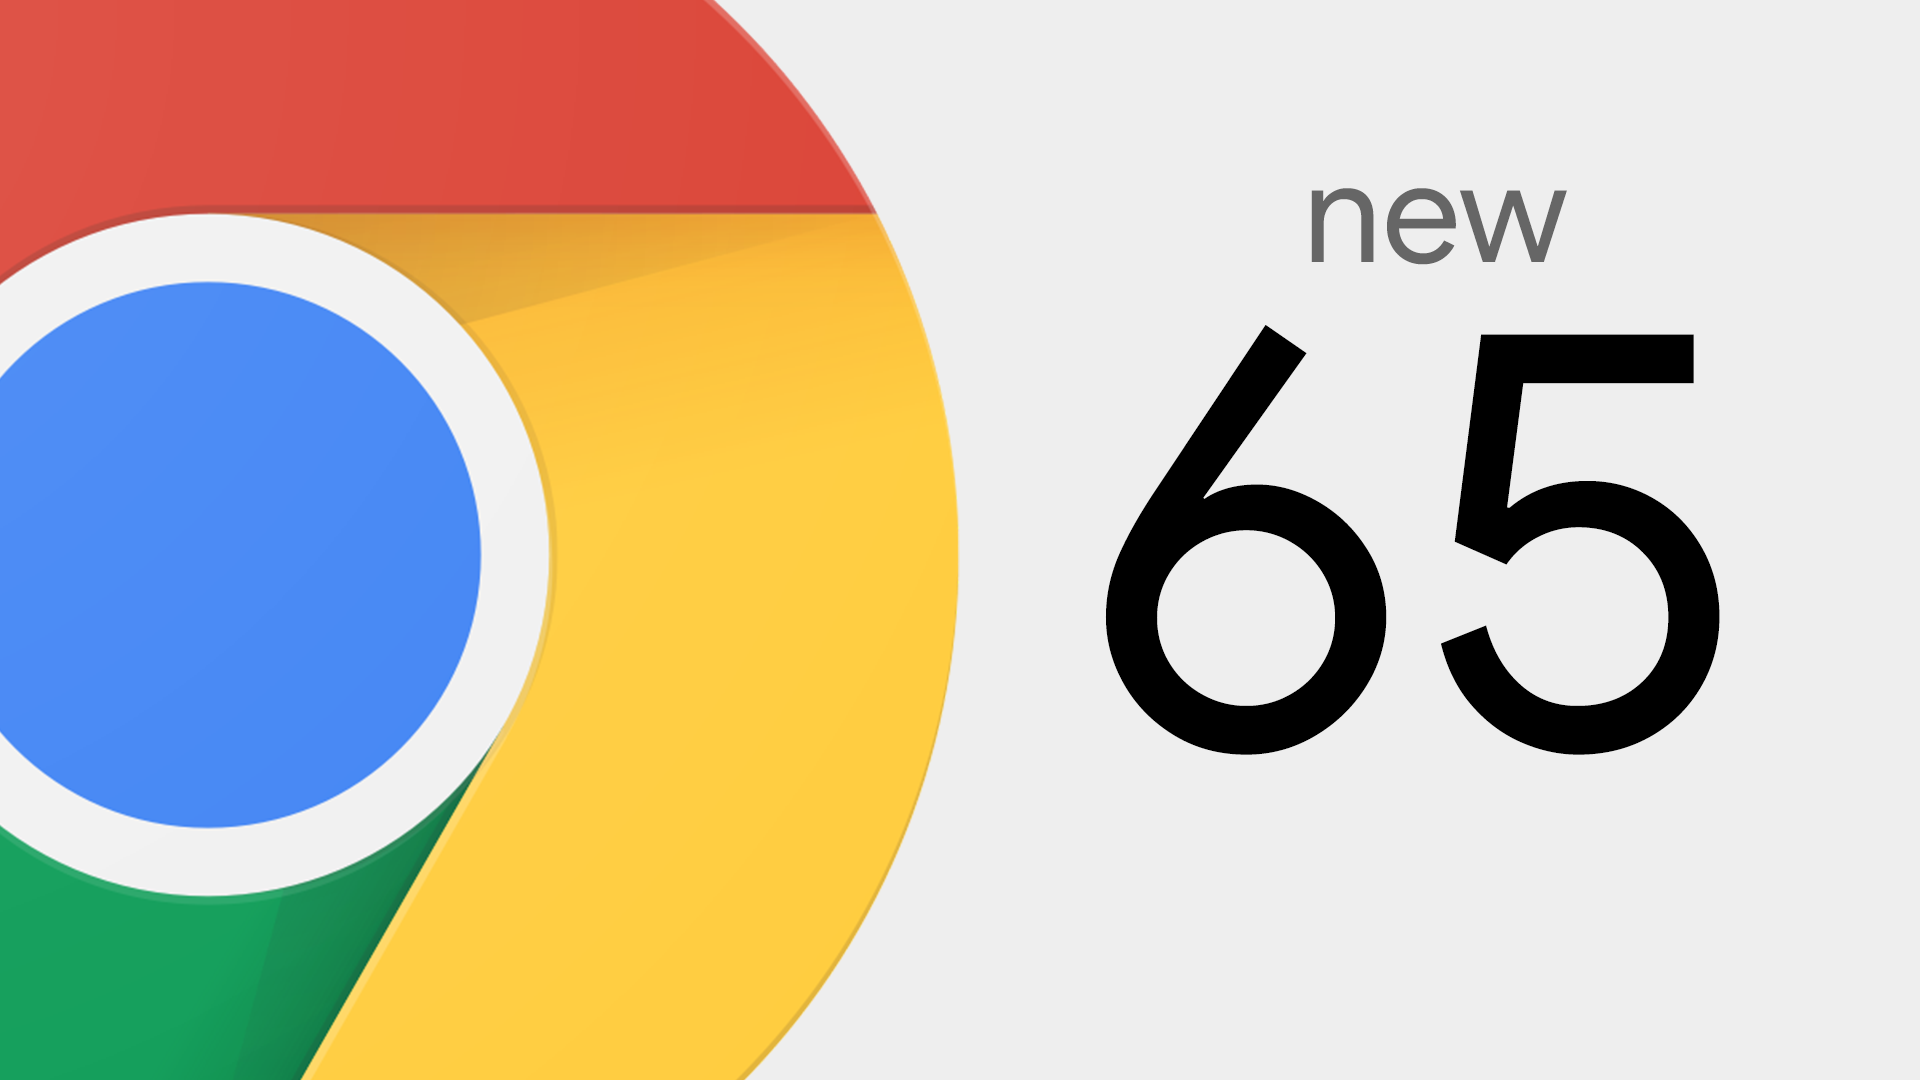 New in Chrome 65